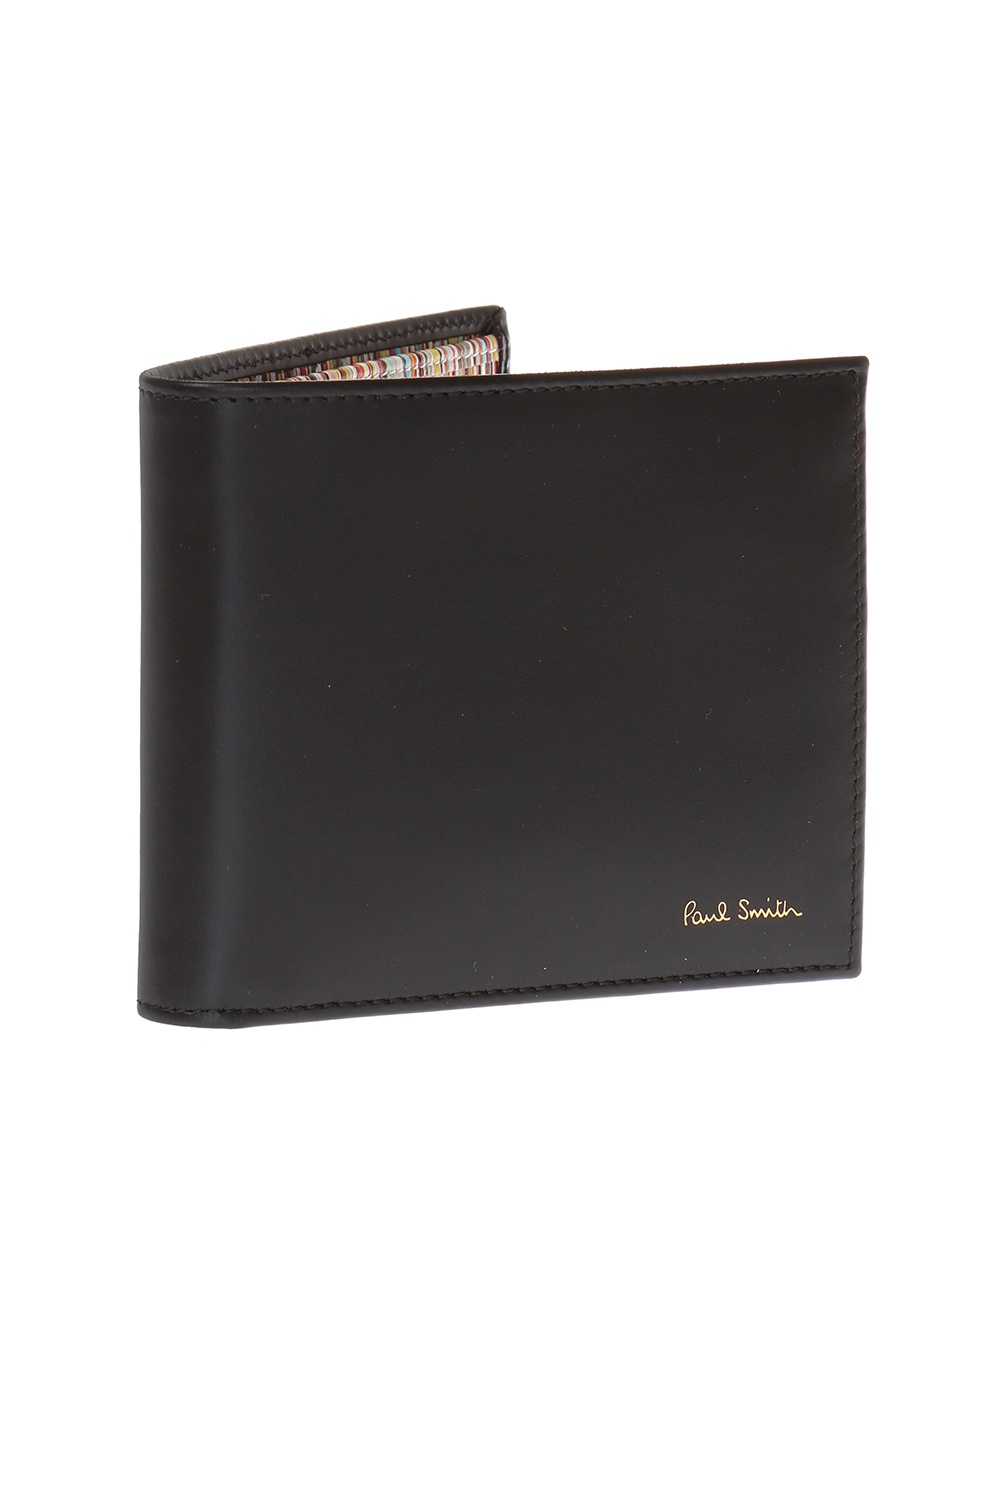 Paul Smith Bi-fold wallet